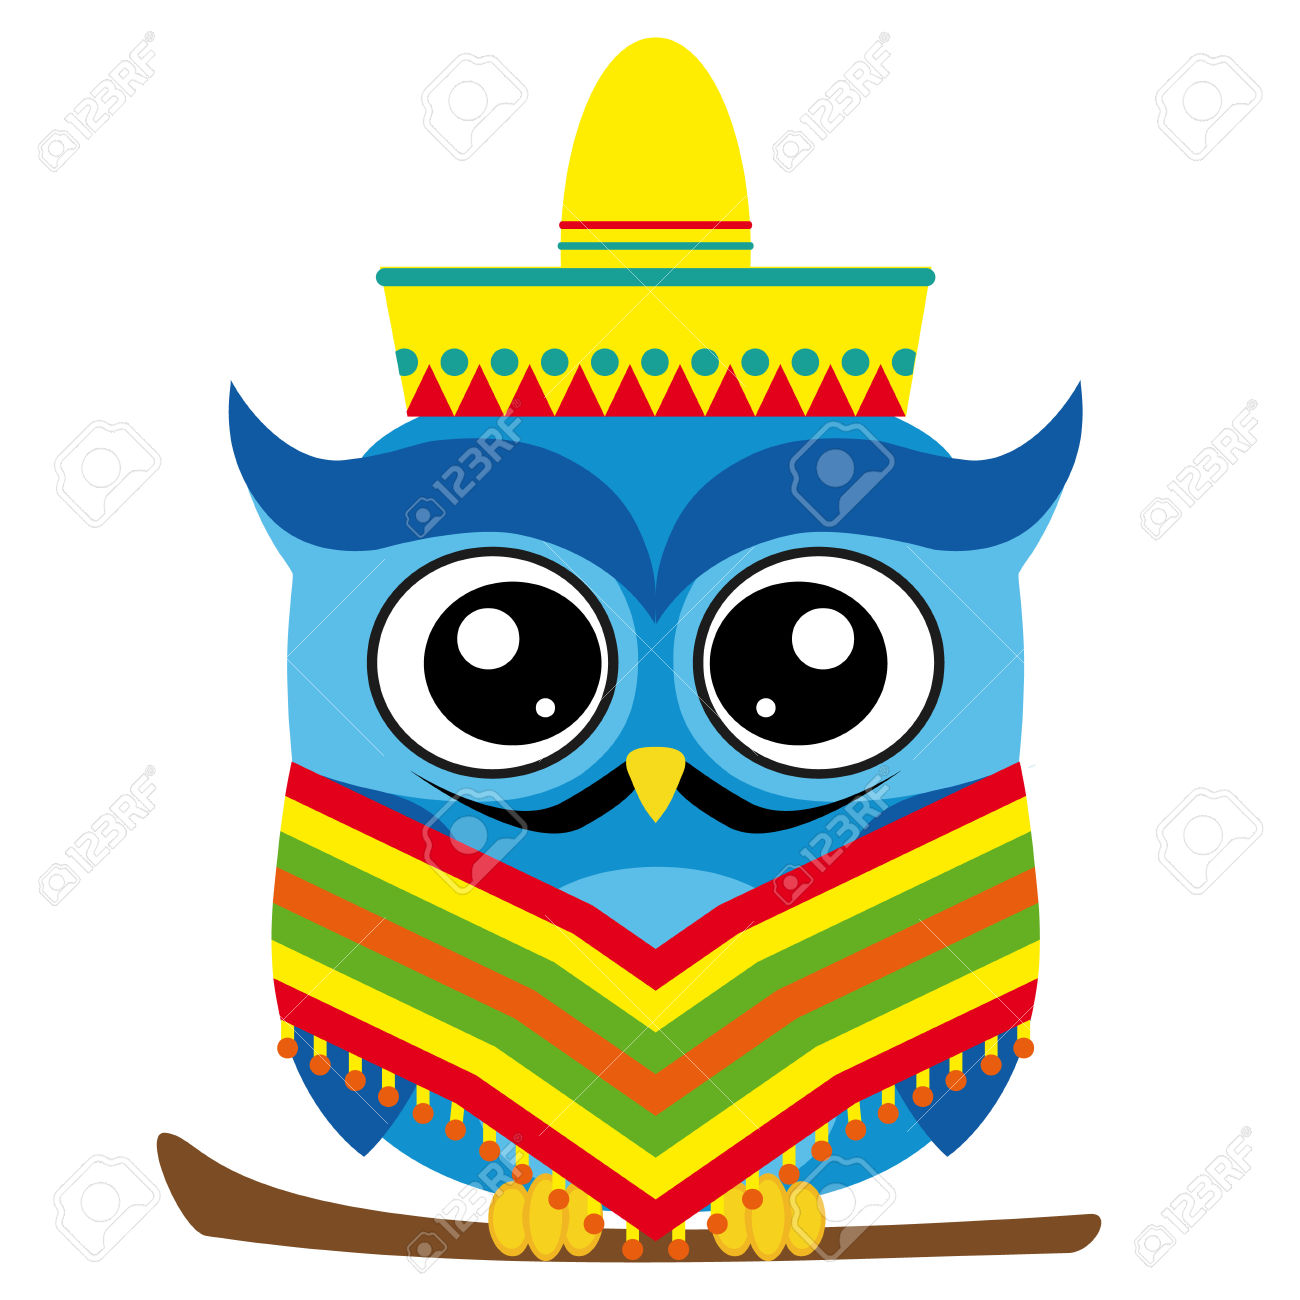 Funny Owl Cartoon Mexican Style Royalty Free Cliparts, Vectors.